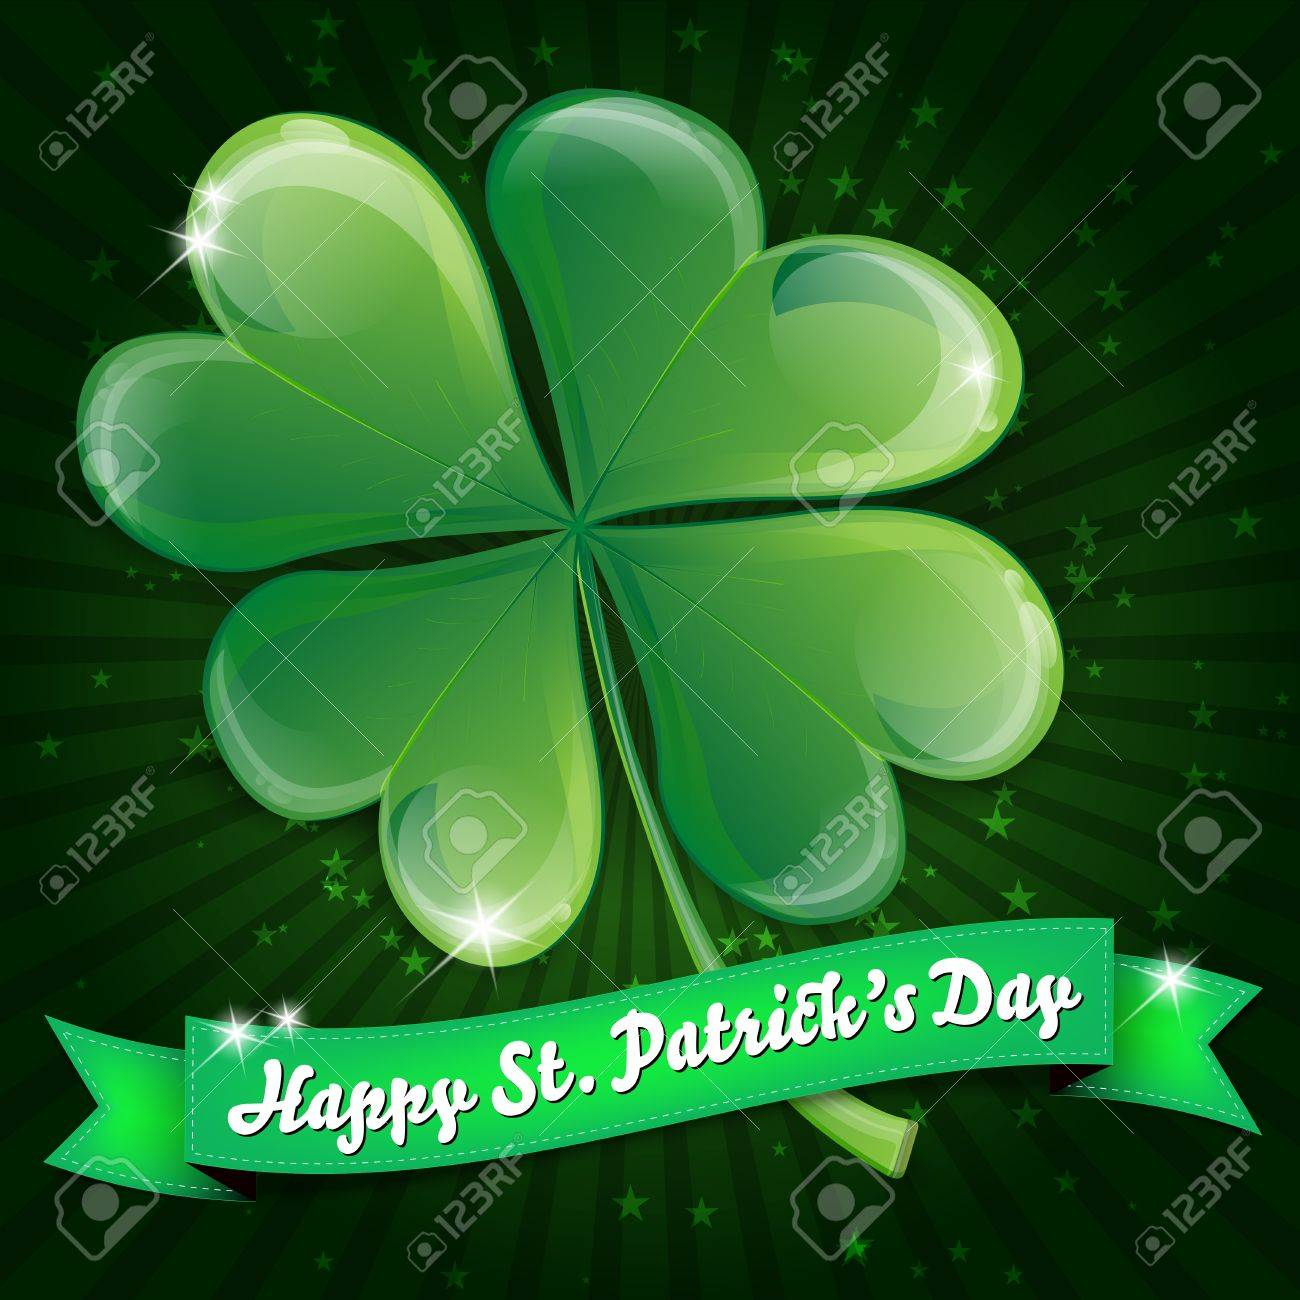 Wishes on St  Patrick s Day - clover leaf and ribbon Stock Vector - 16571066